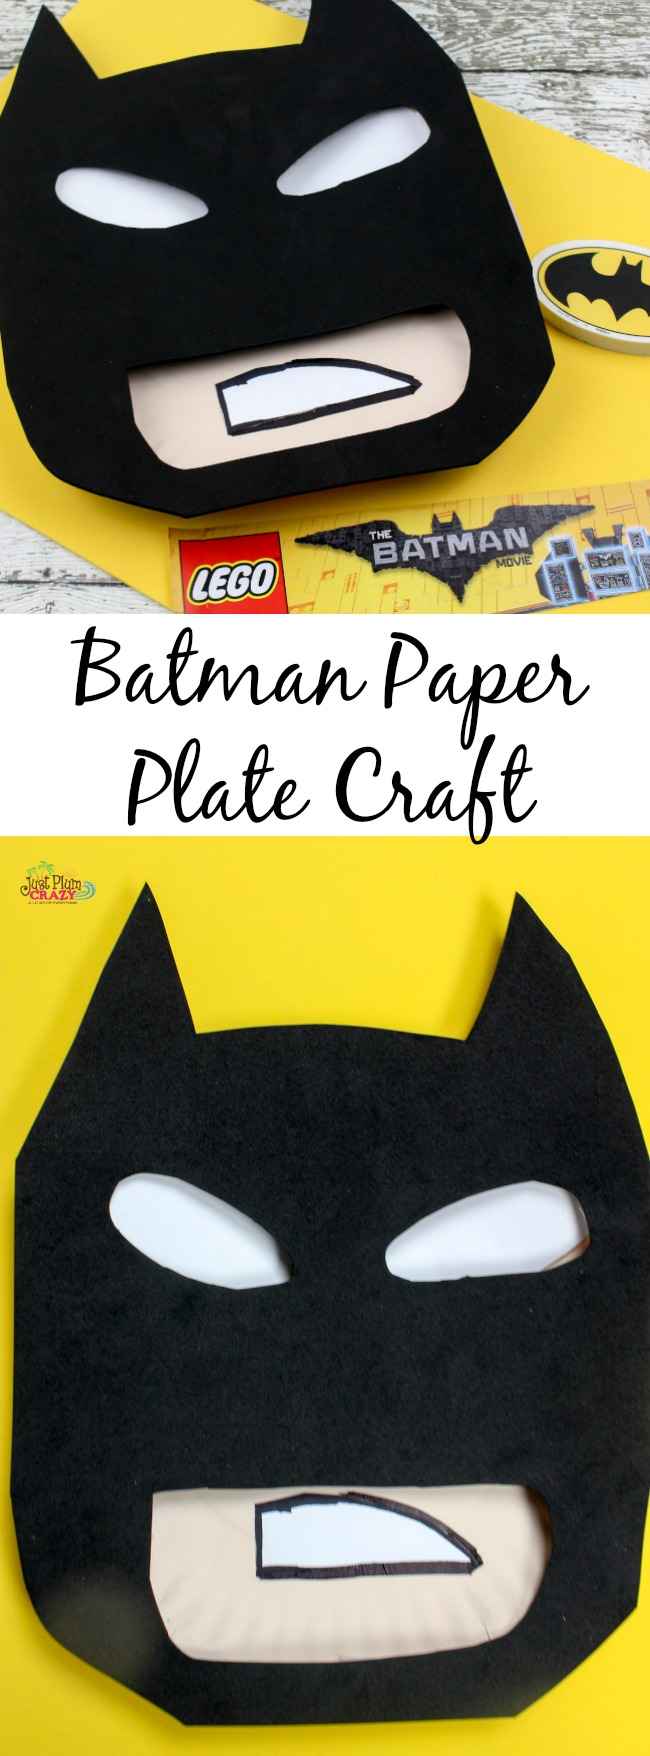 Uncategorized Batman Crafts batman paper plate craft tutorial just plum crazy with the new movie premiering this weekend i saw it fitting that we share